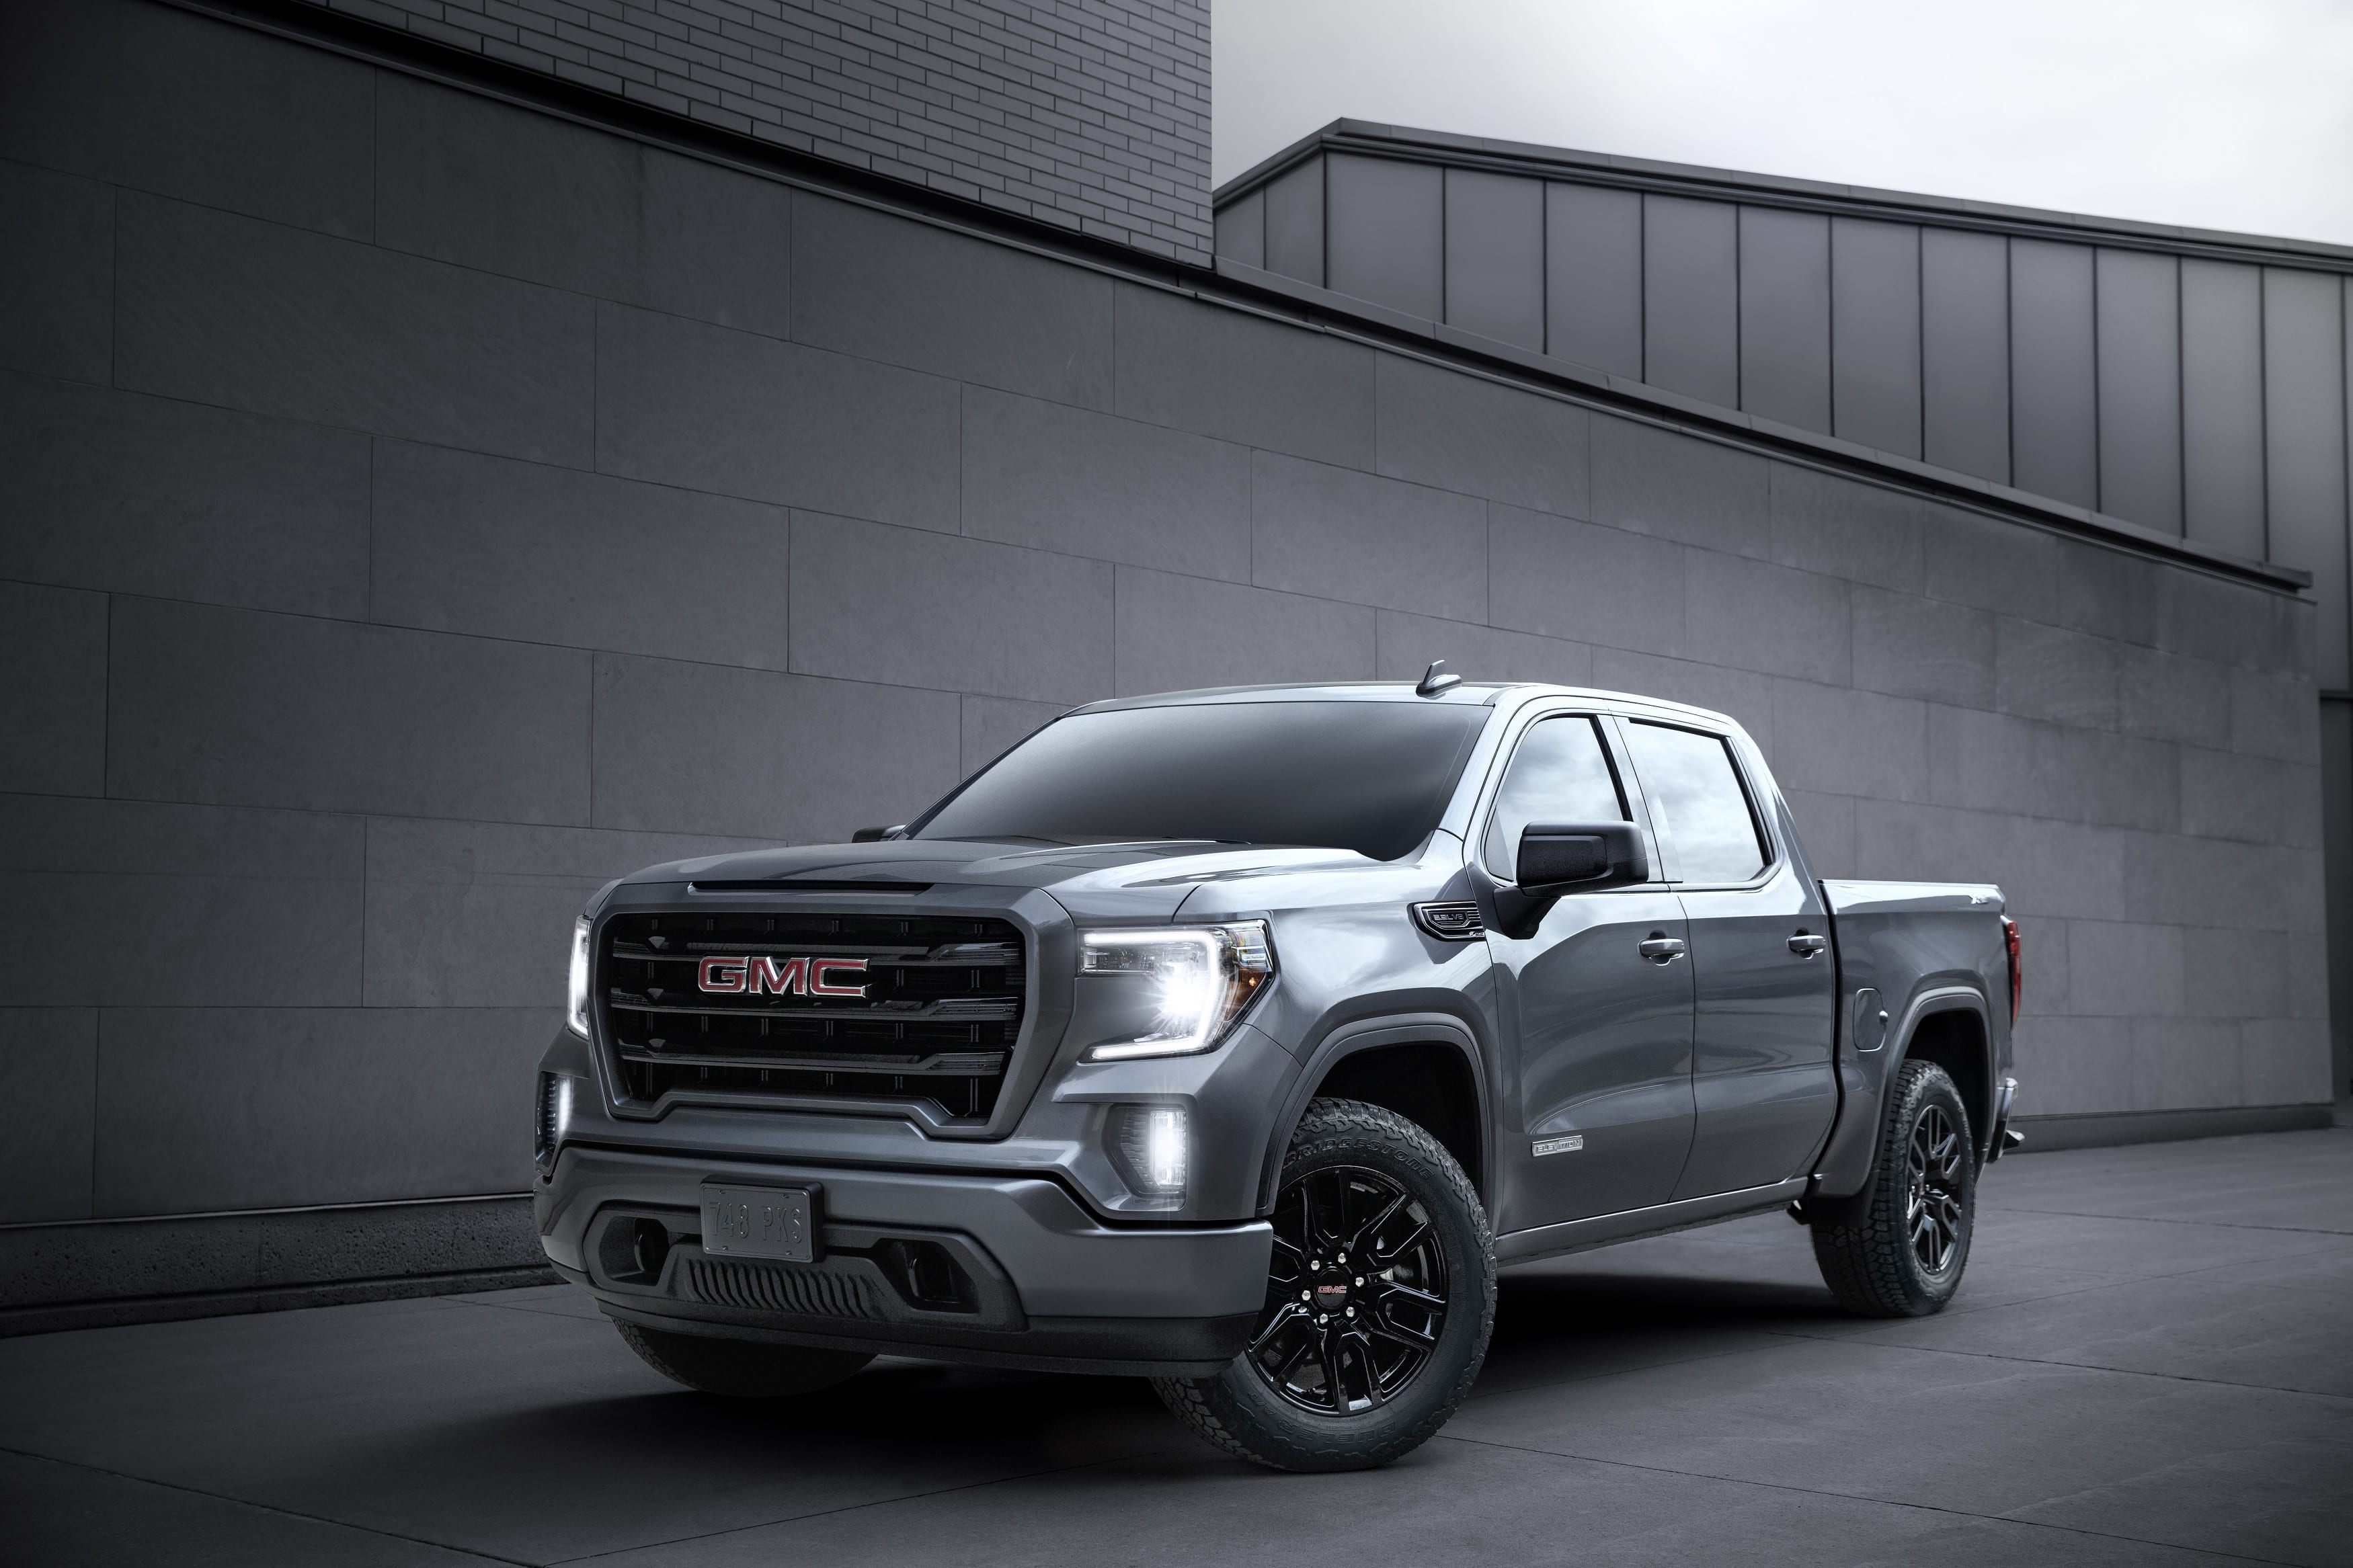 2020 Gmc Sierra Updated What To Expect Carbon Box Pricing